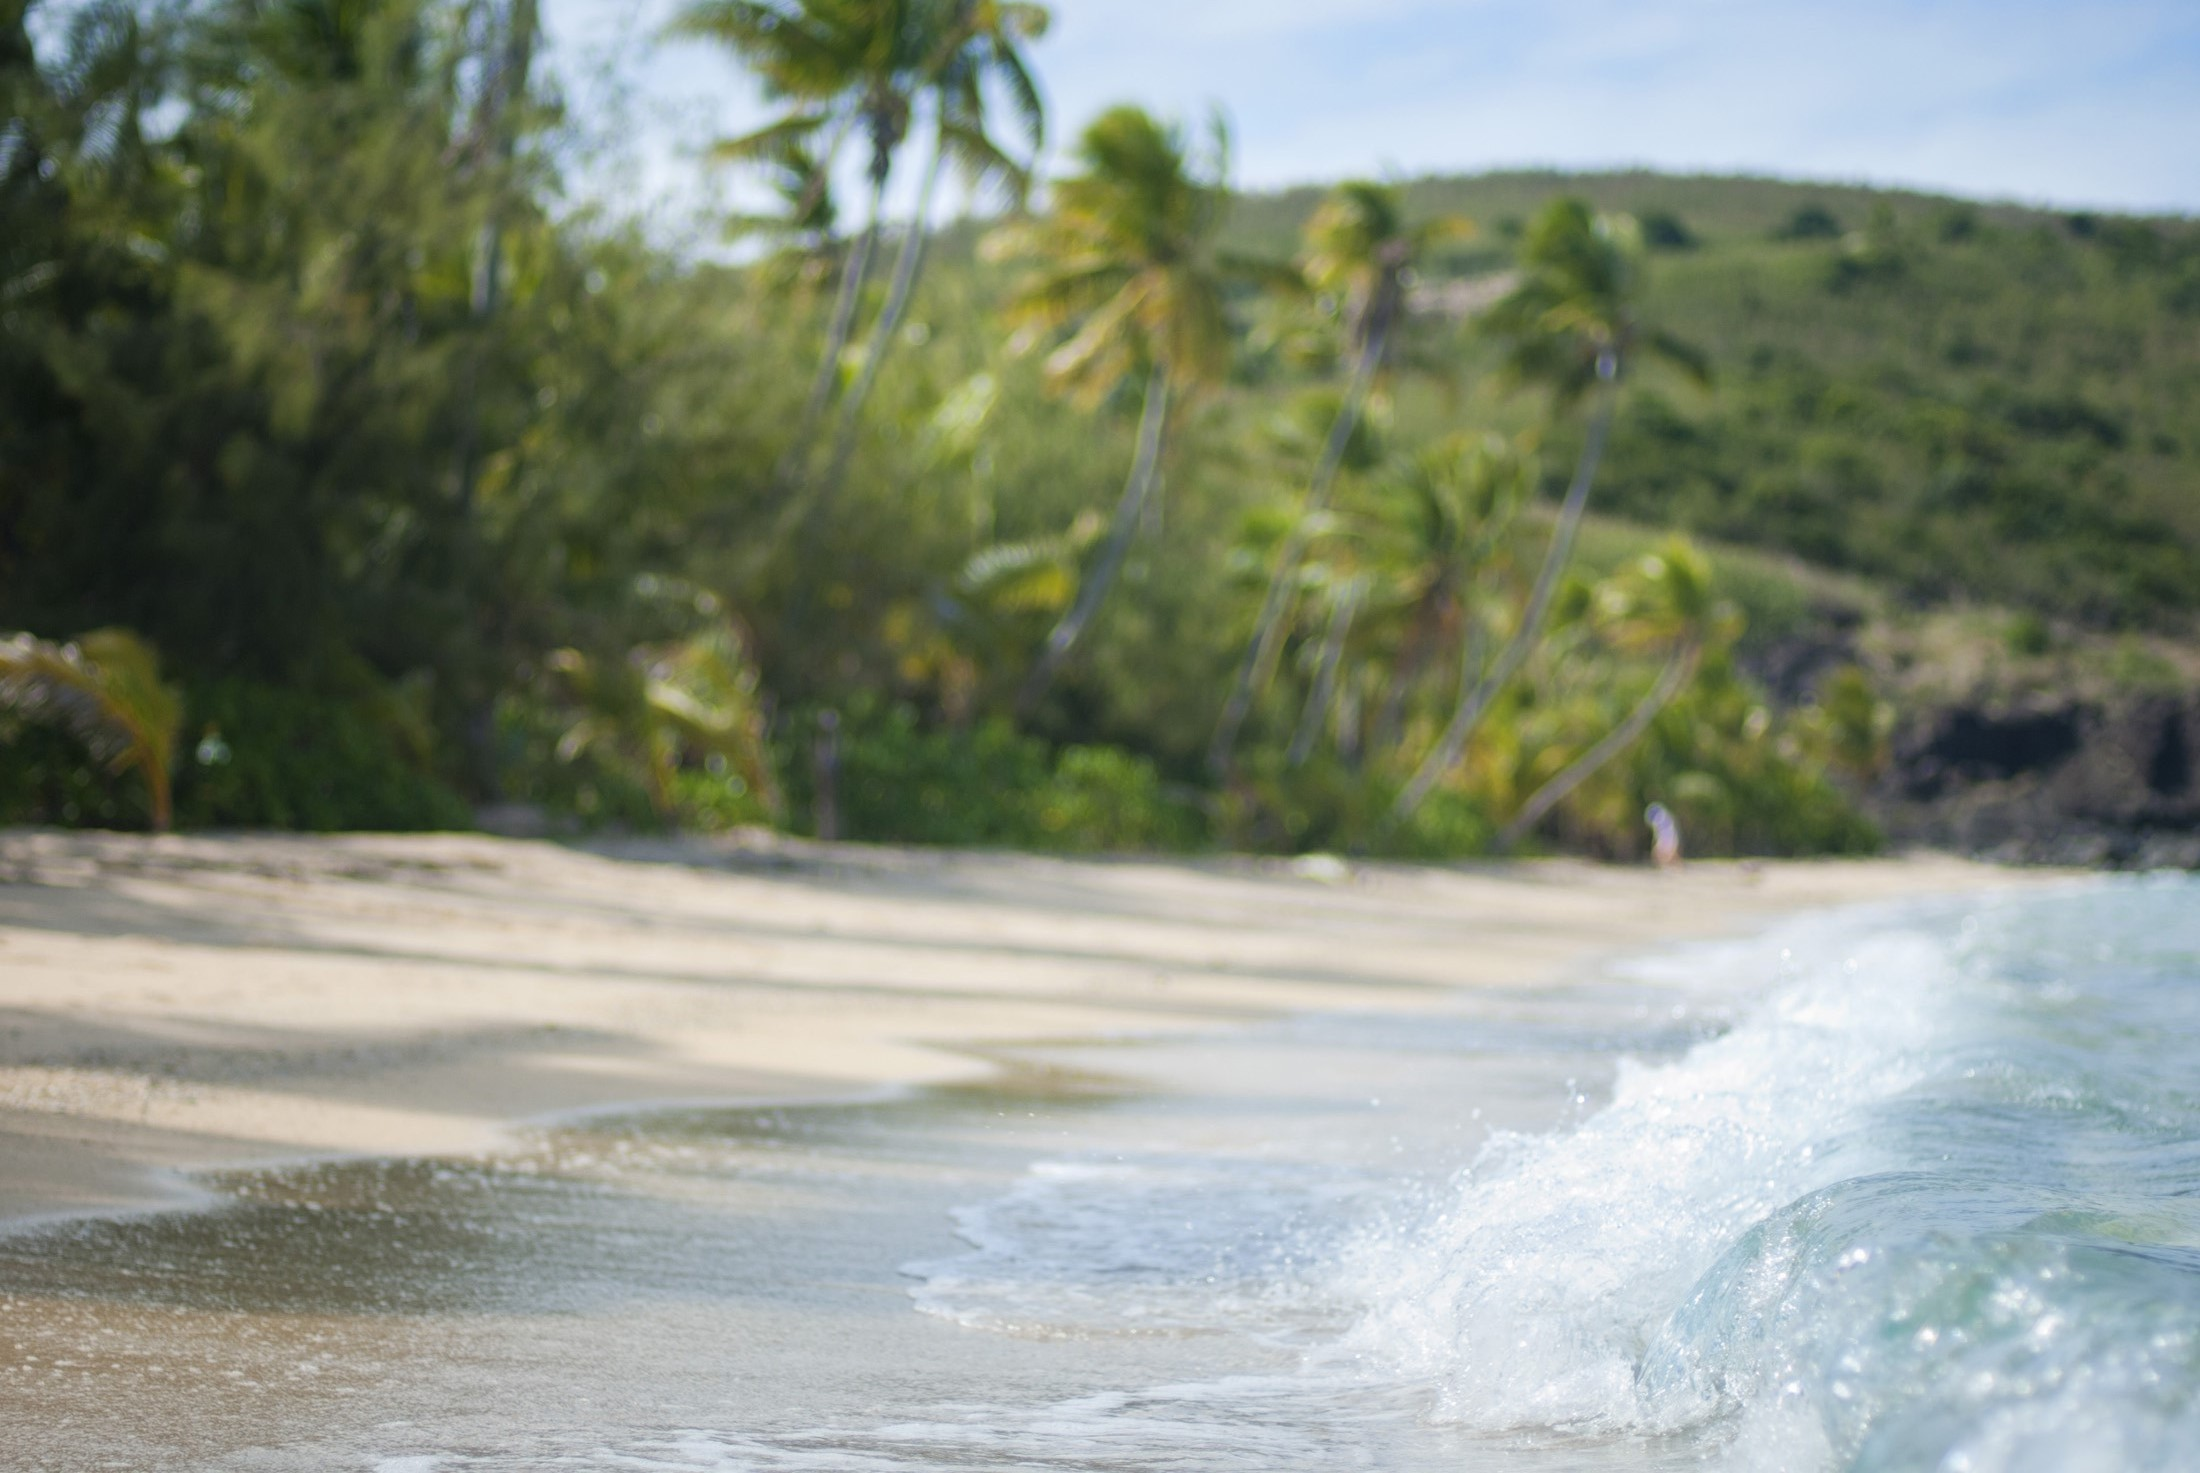 Surf breaking on a deserted tropical sandy beach fringed with palm trees and hills